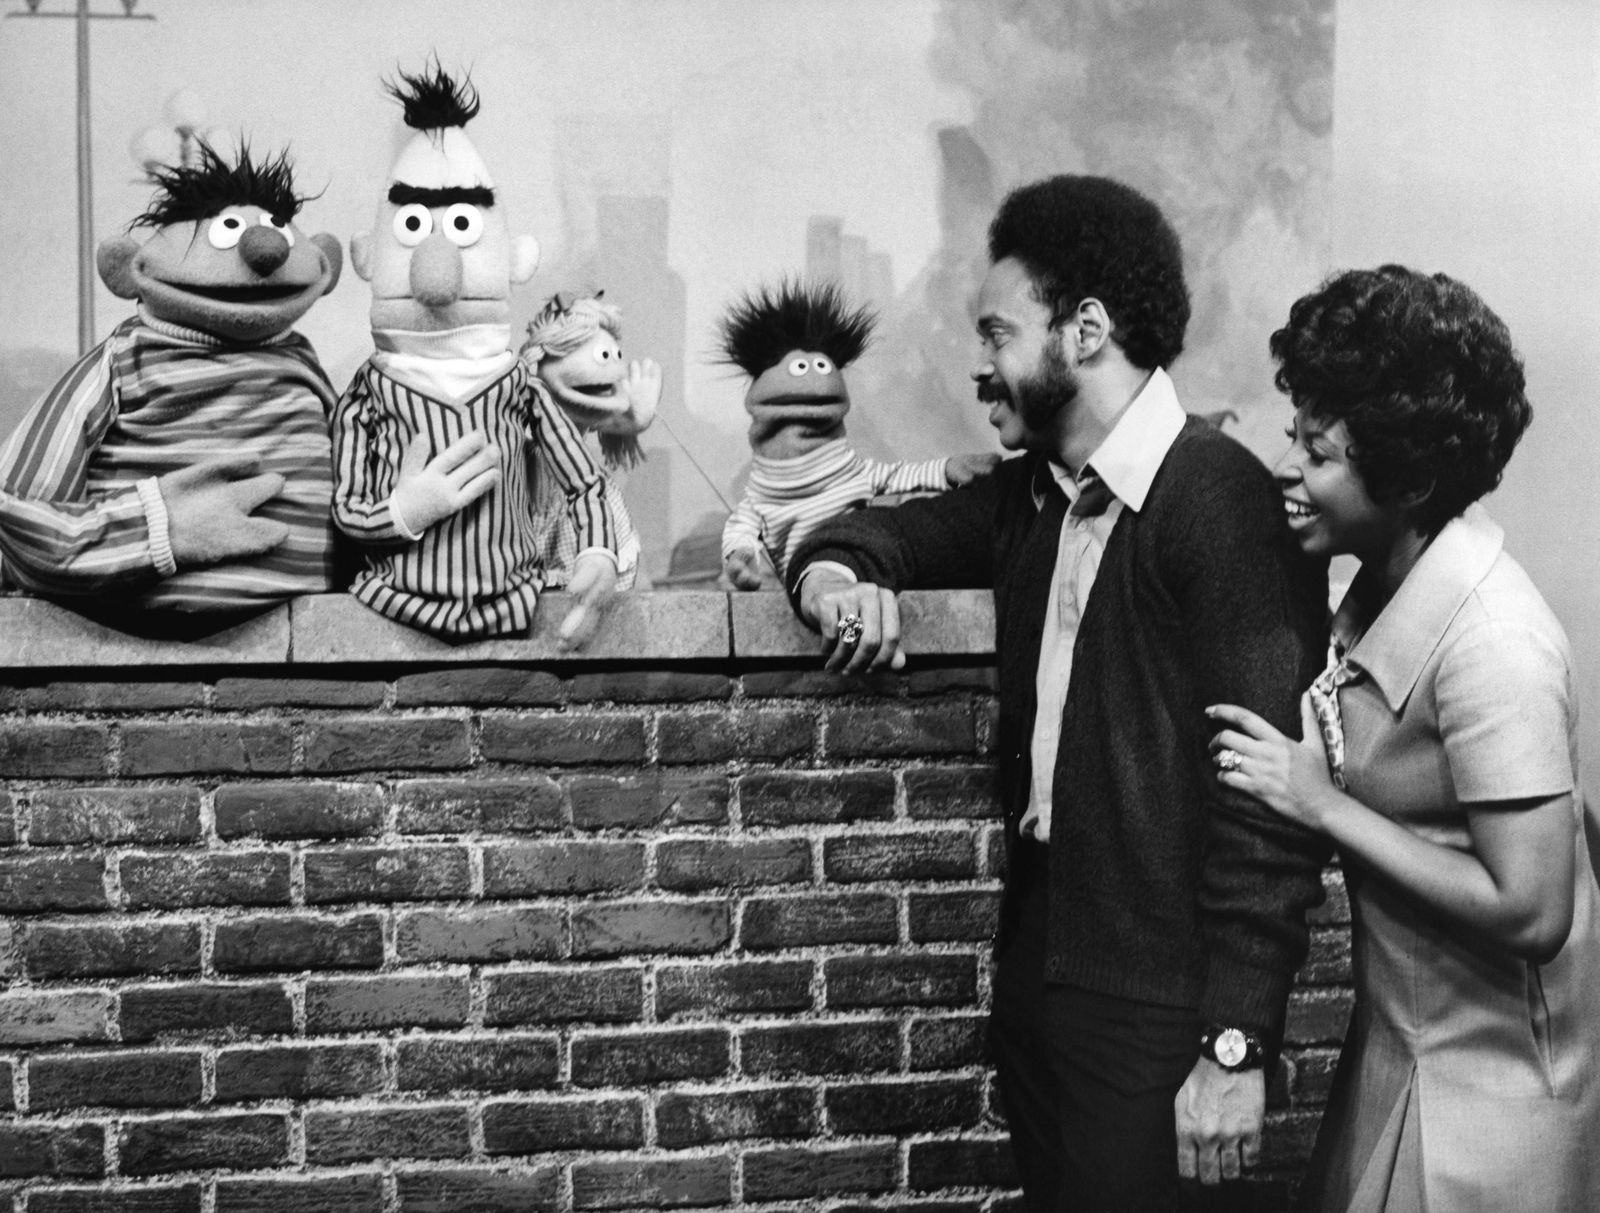 Still from the first broadcasted episode of the children's television series Sesame Street (U.S.A. 1969)